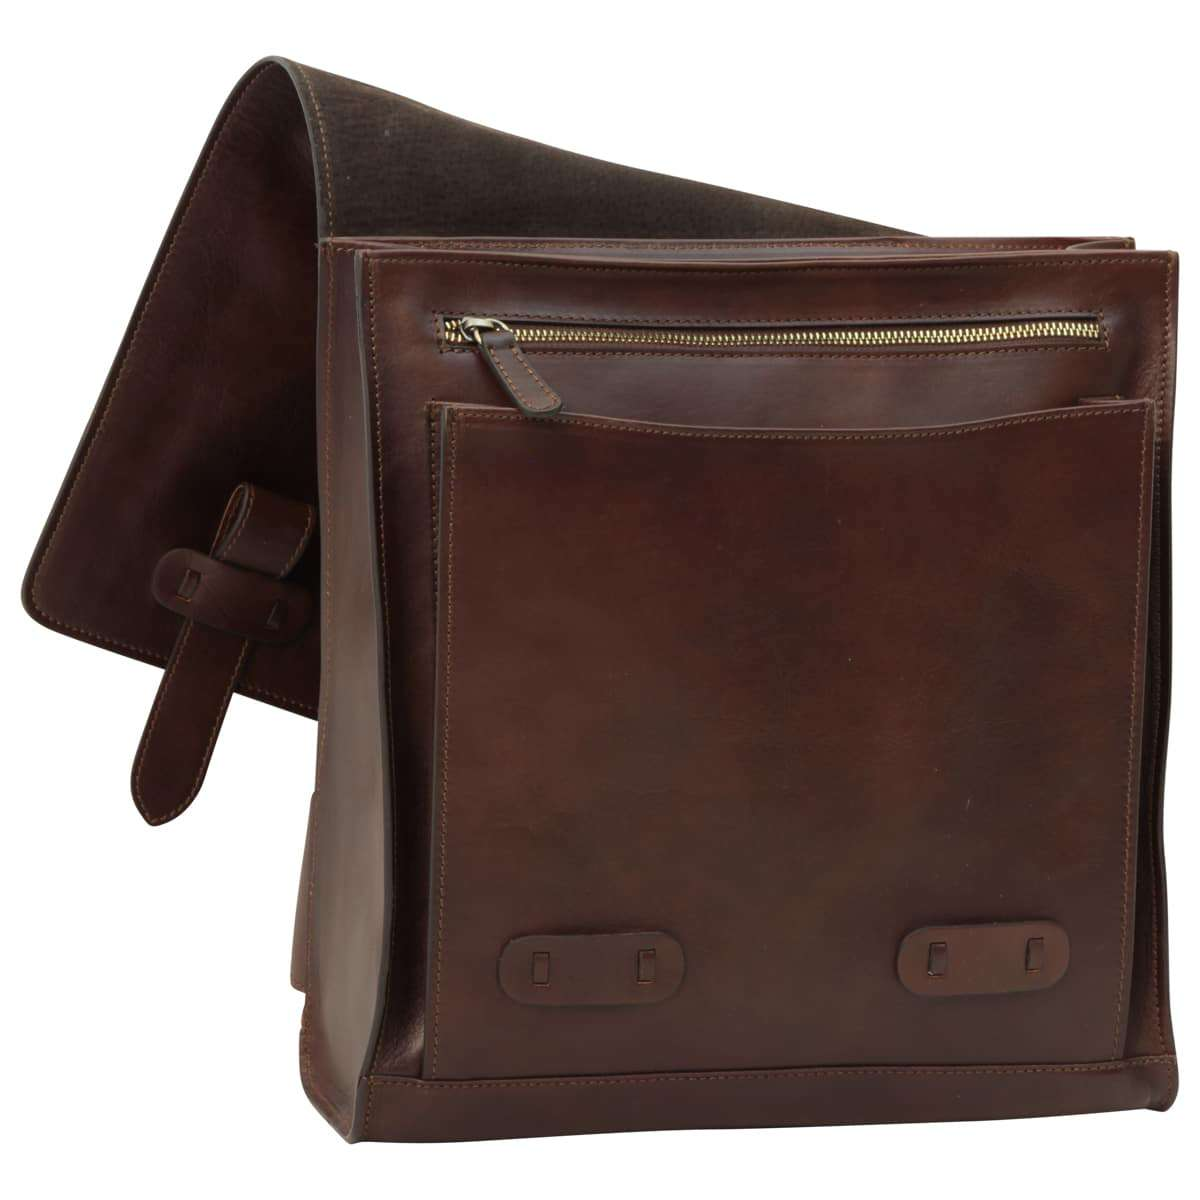 Cowhide leather backpack with double buckle closure - Dark Brown | 411689TM | EURO | Old Angler Firenze